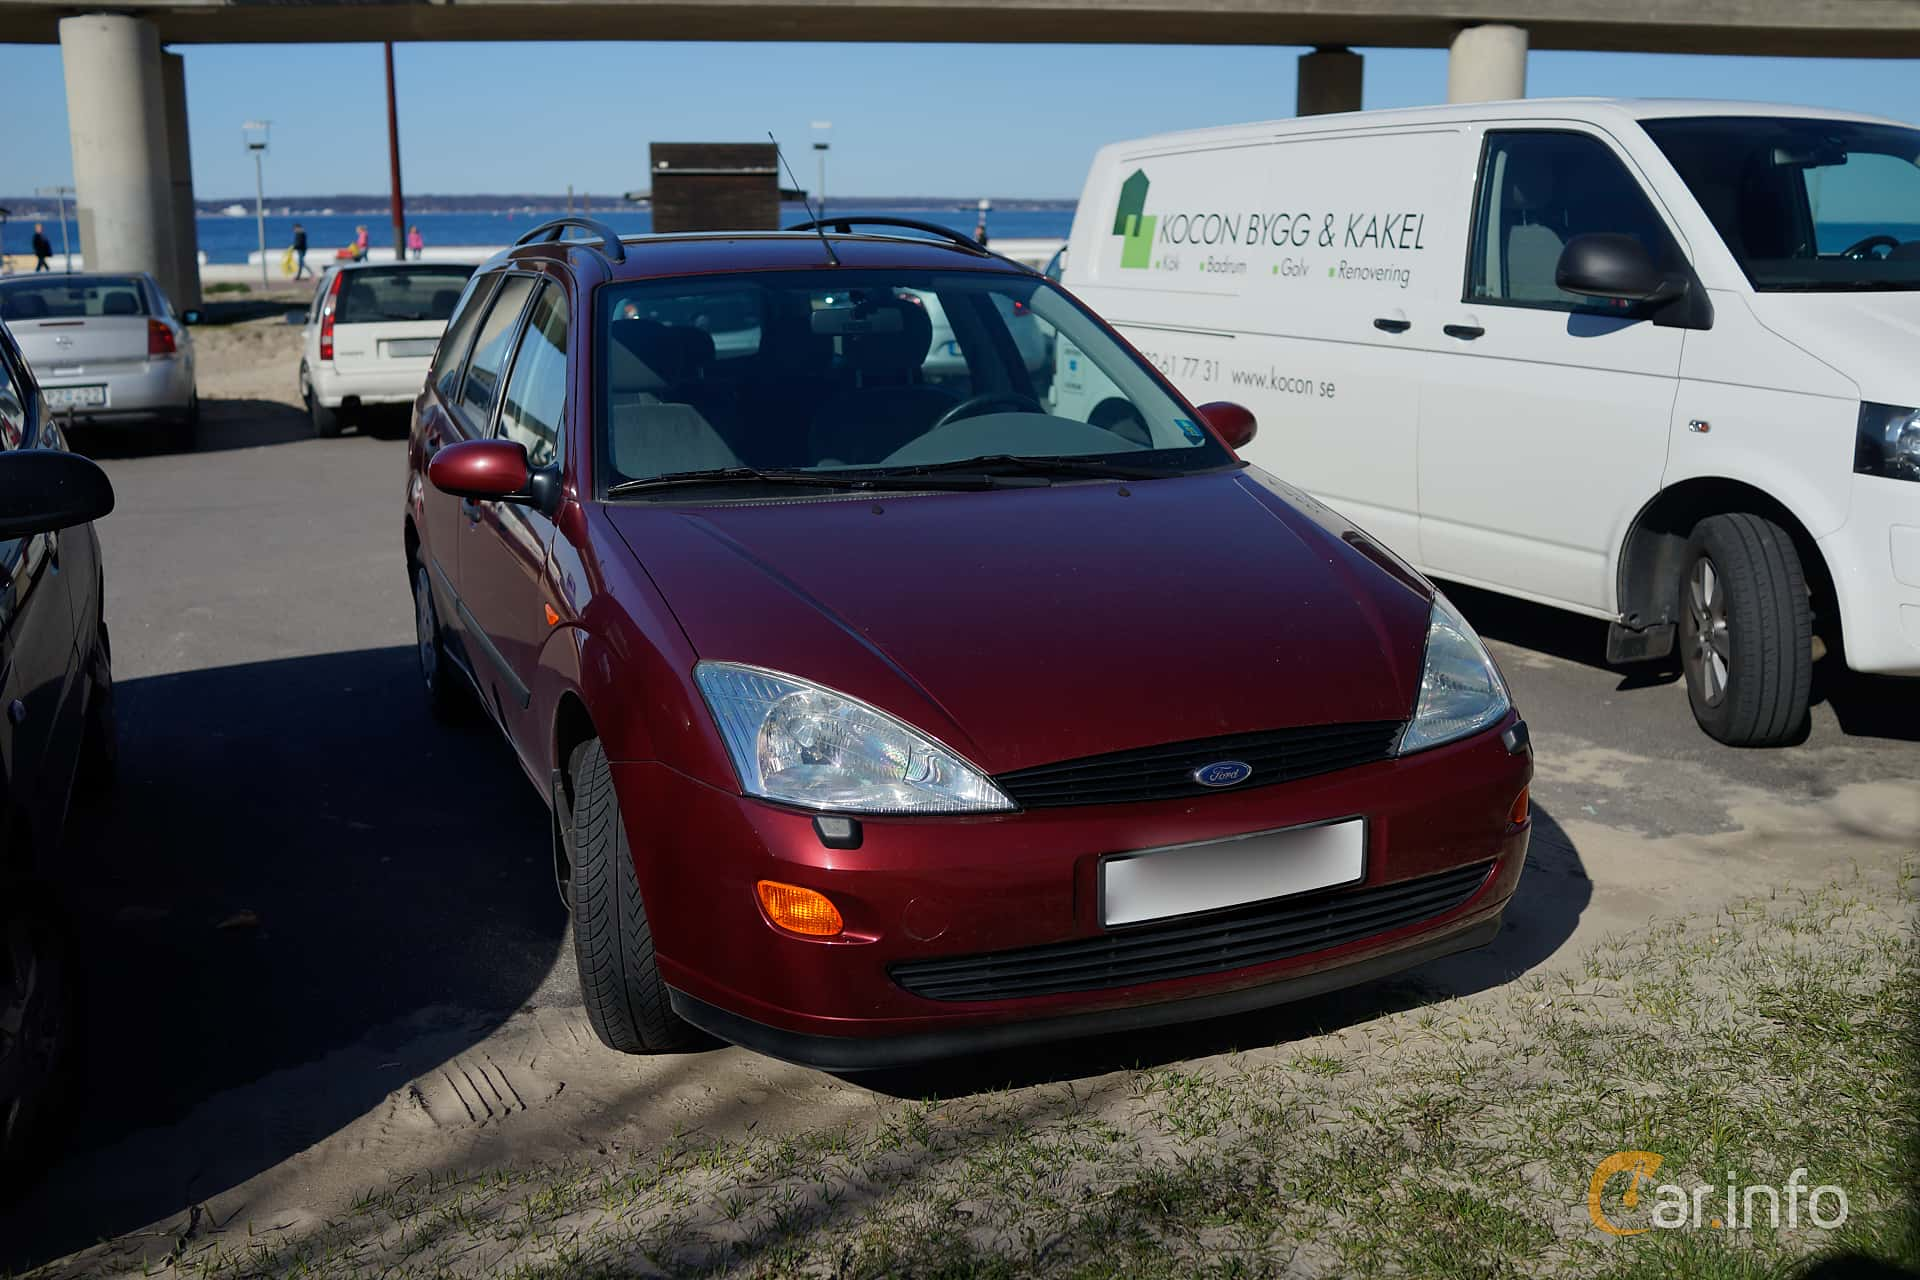 2 Images Of Ford Focus Turnier 16 Manual 101hp 2000 By Se Sedan Front Side 101ps